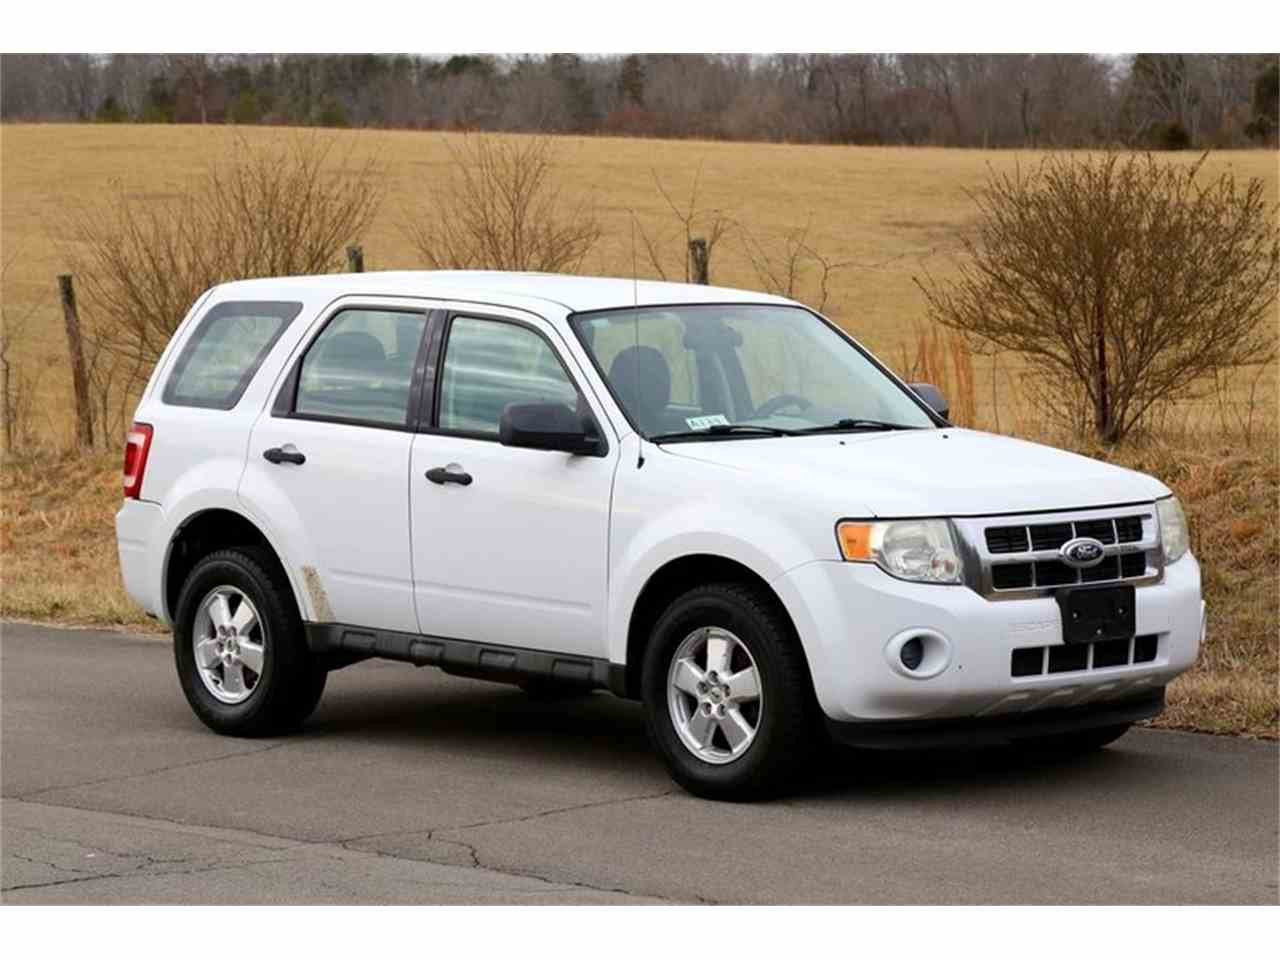 Large Picture of '10 Ford Escape - $3,950.00 - MYZ9